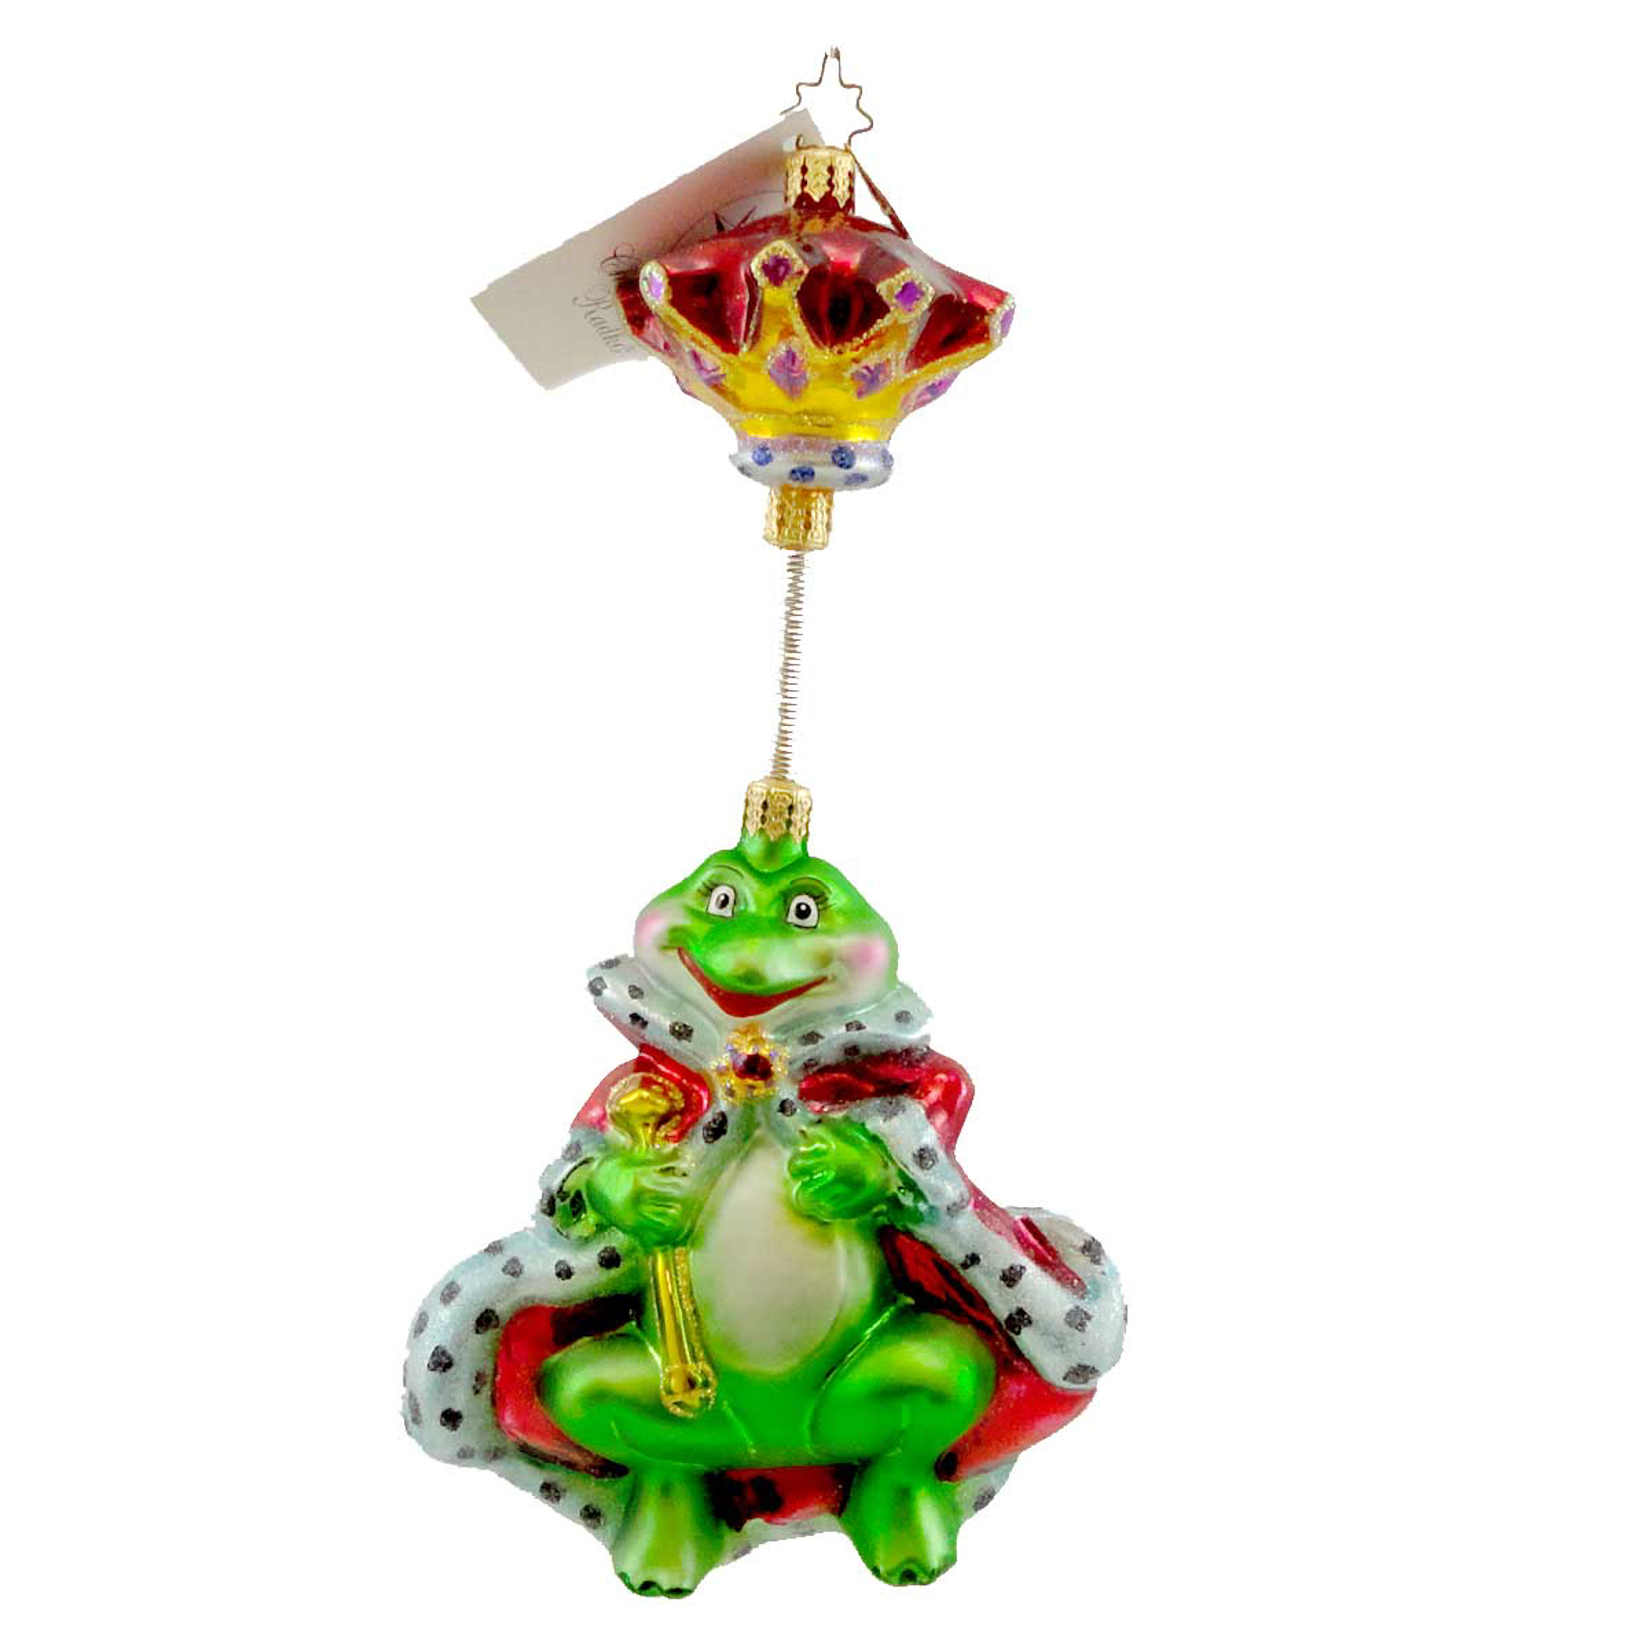 Christopher Radko LILY PAD PRINCE Blown Glass Ornament Frog Crown